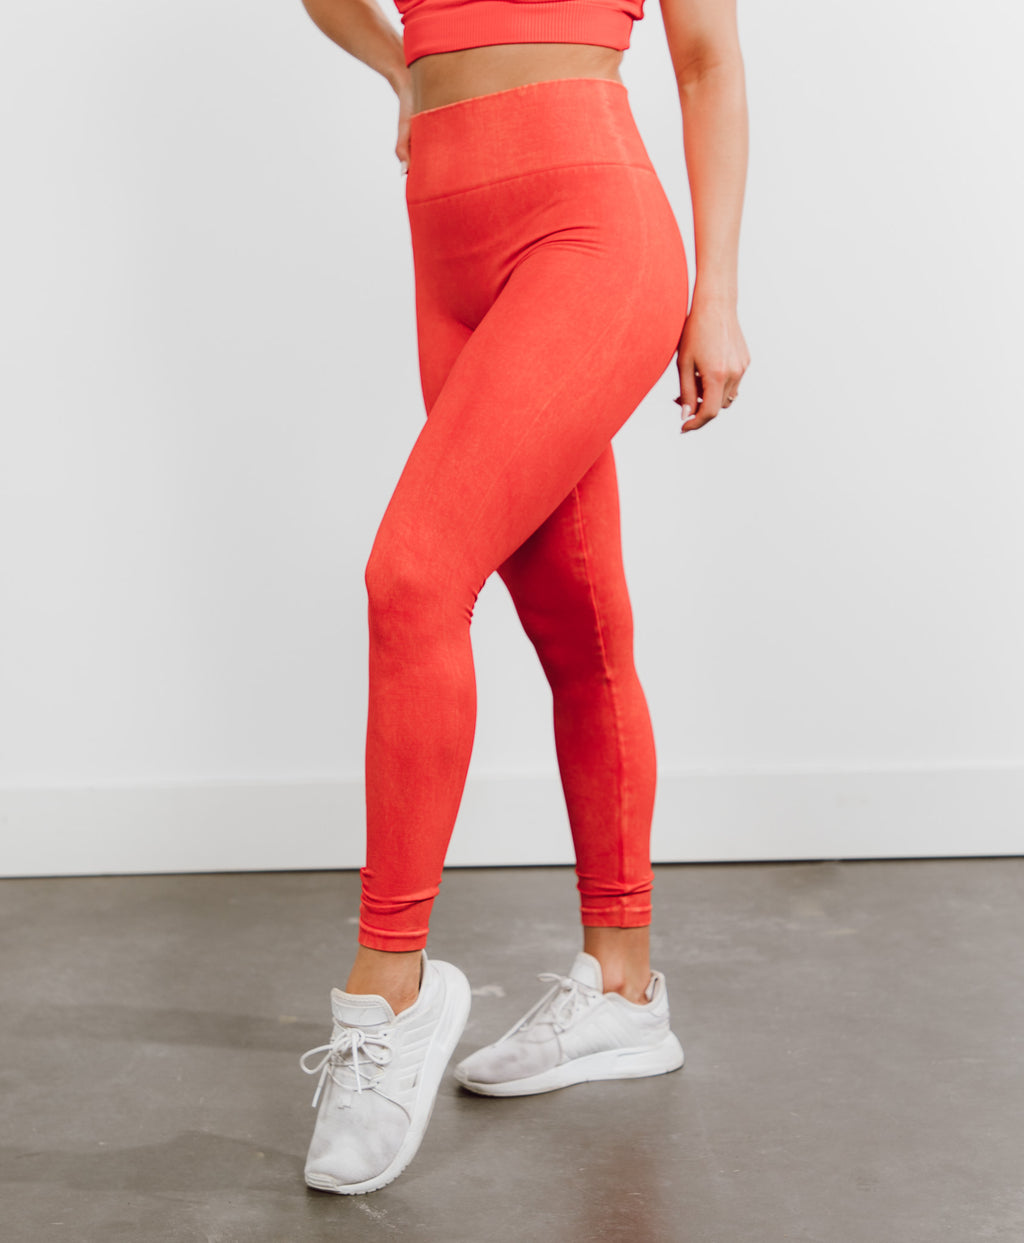 Cassi Seamless Leggings in Red